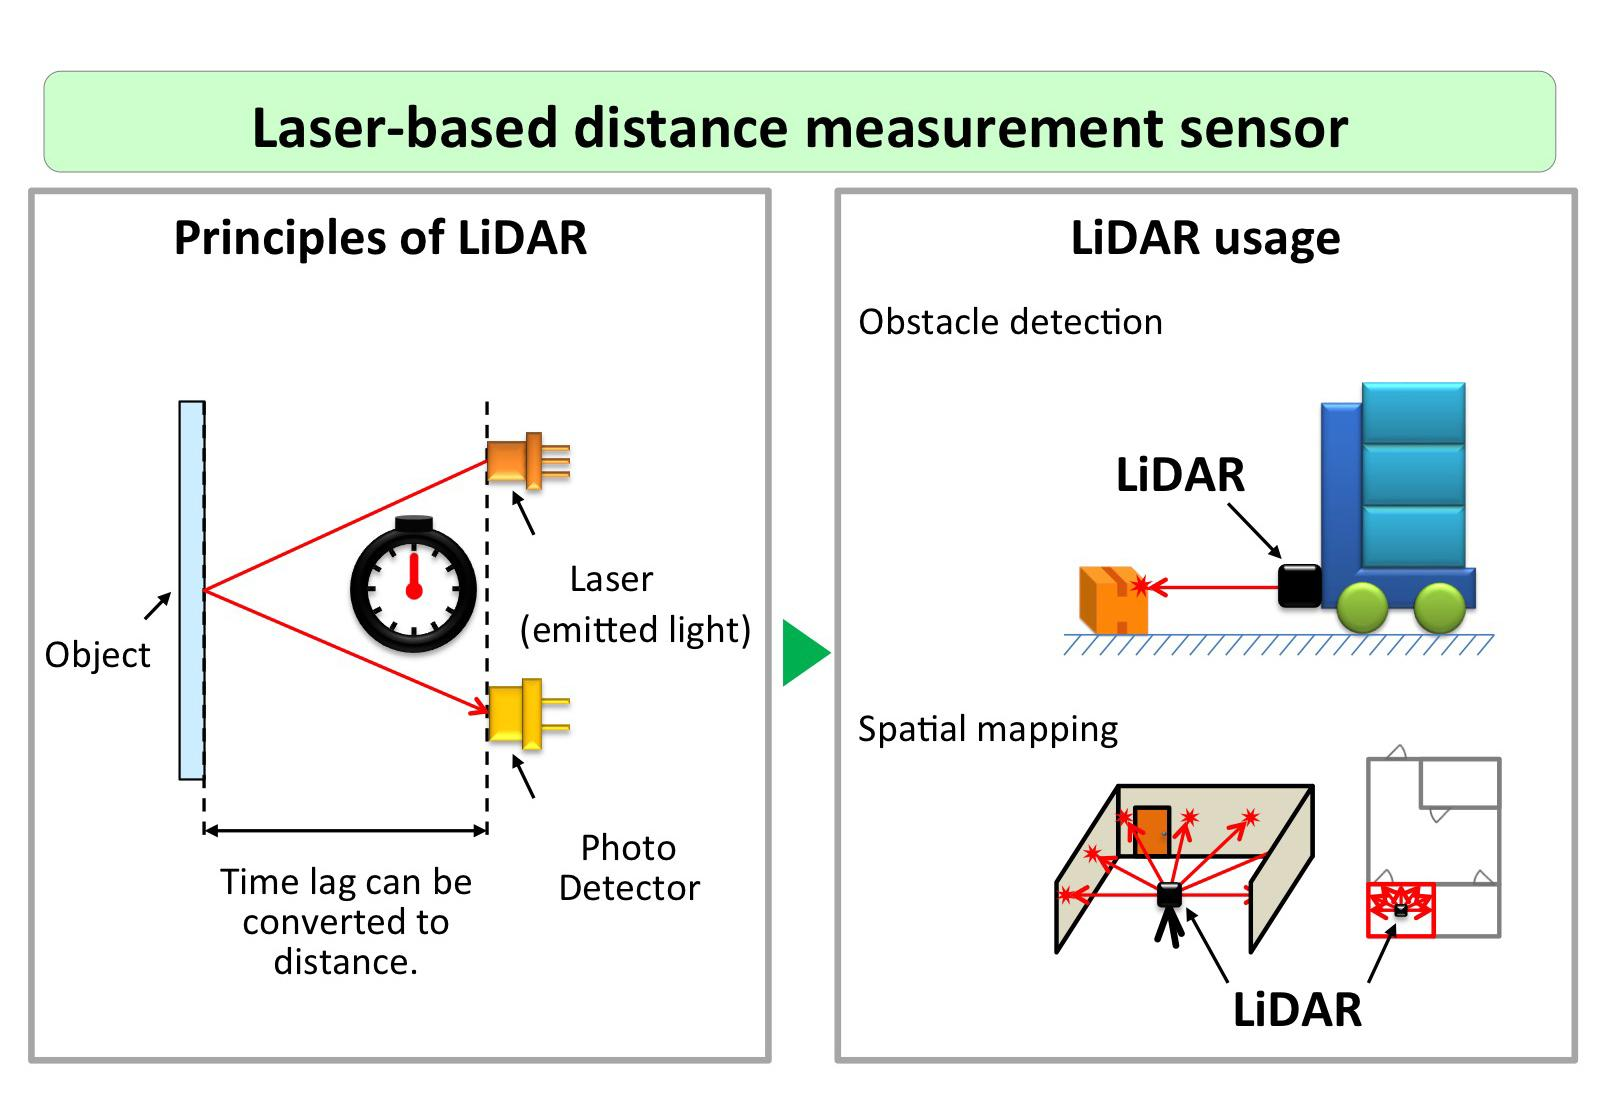 image: Principles and usage of LiDAR